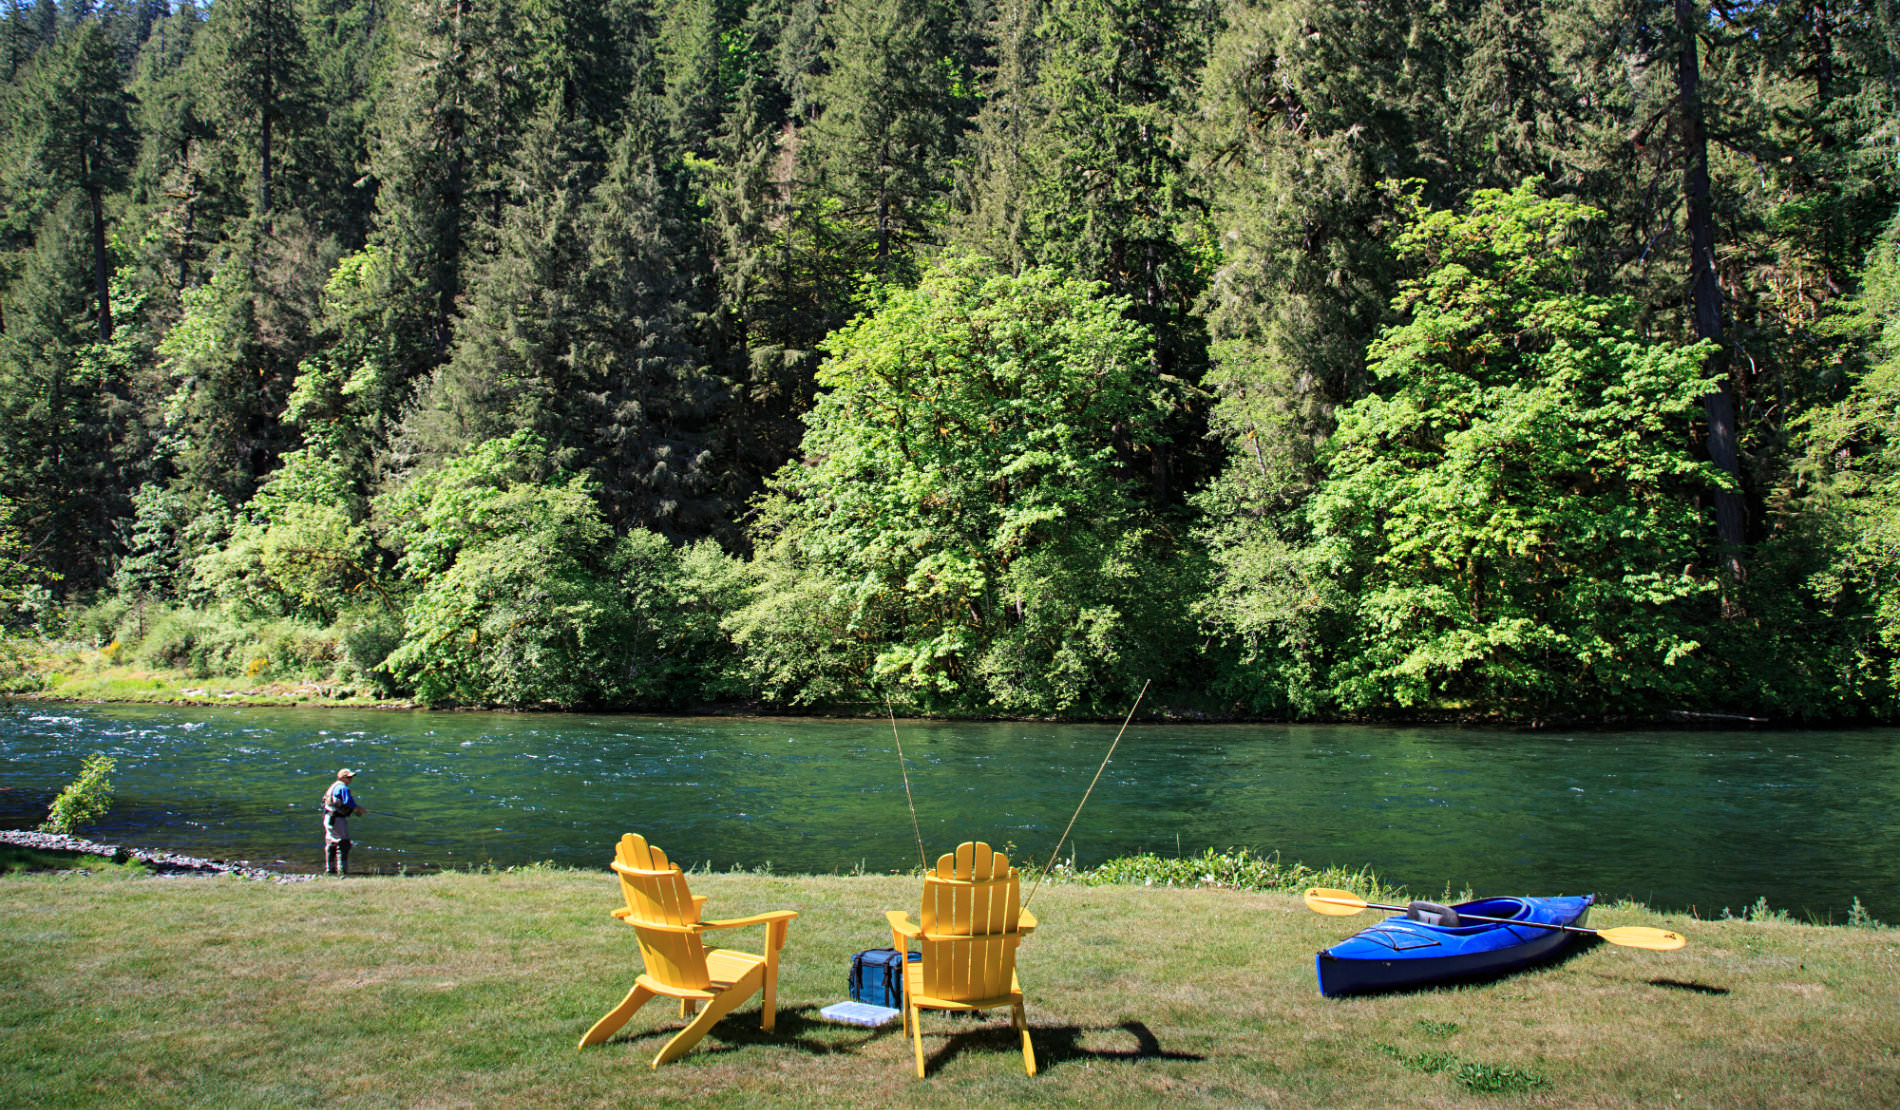 Wooded area on edge of river bank with two wooden chairs and a blue kayak and man fishing